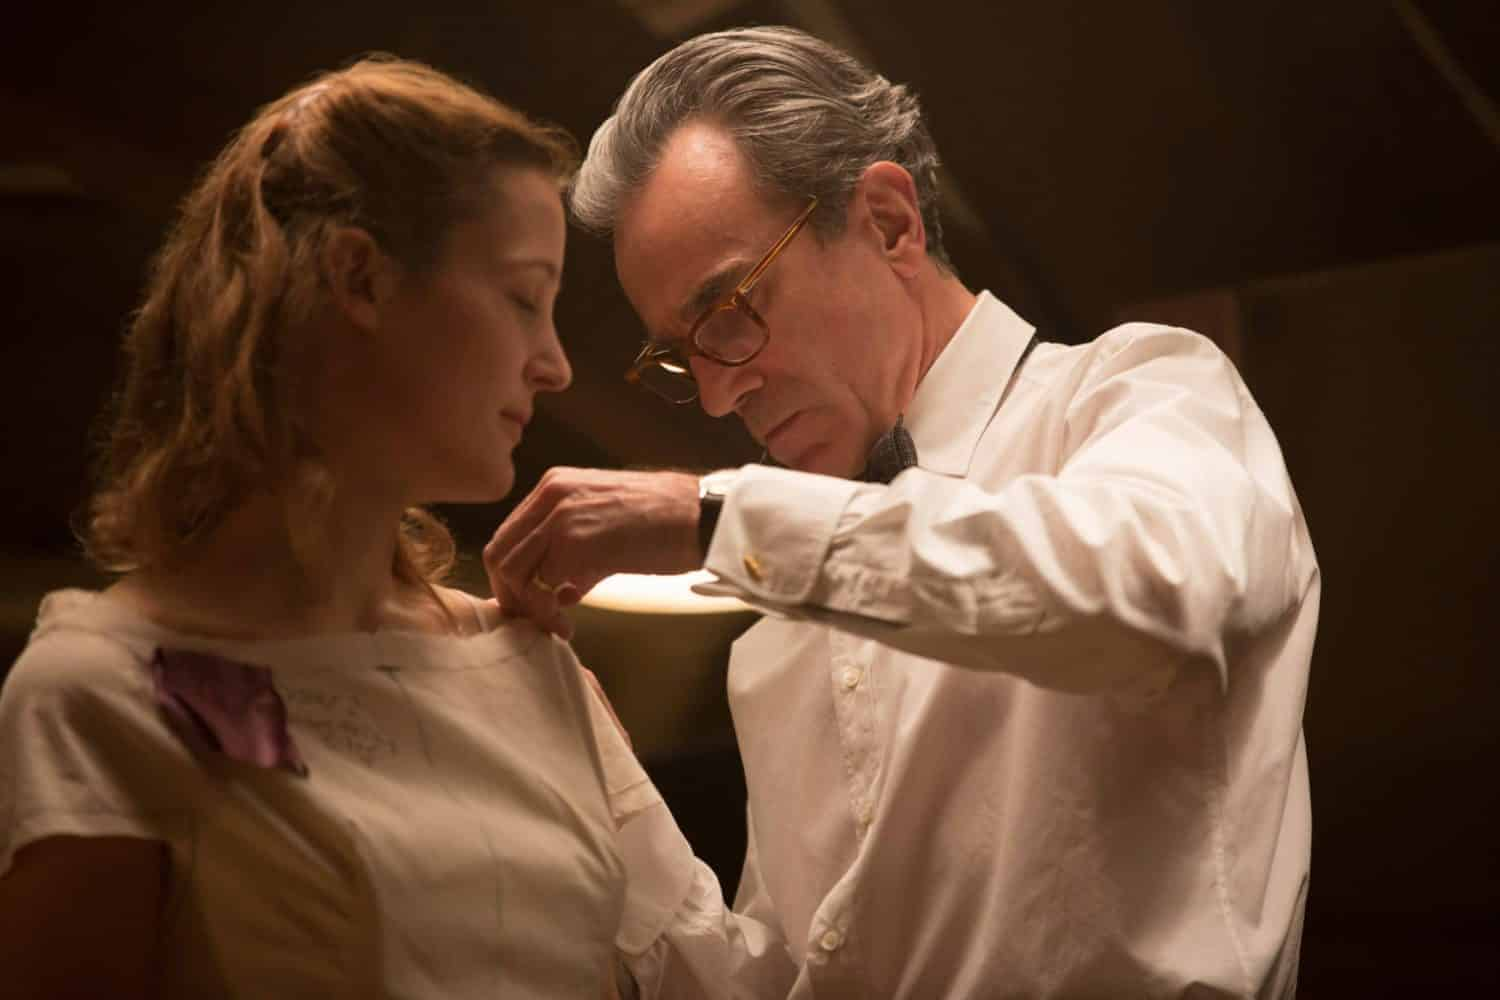 still uit de film Phantom Thread